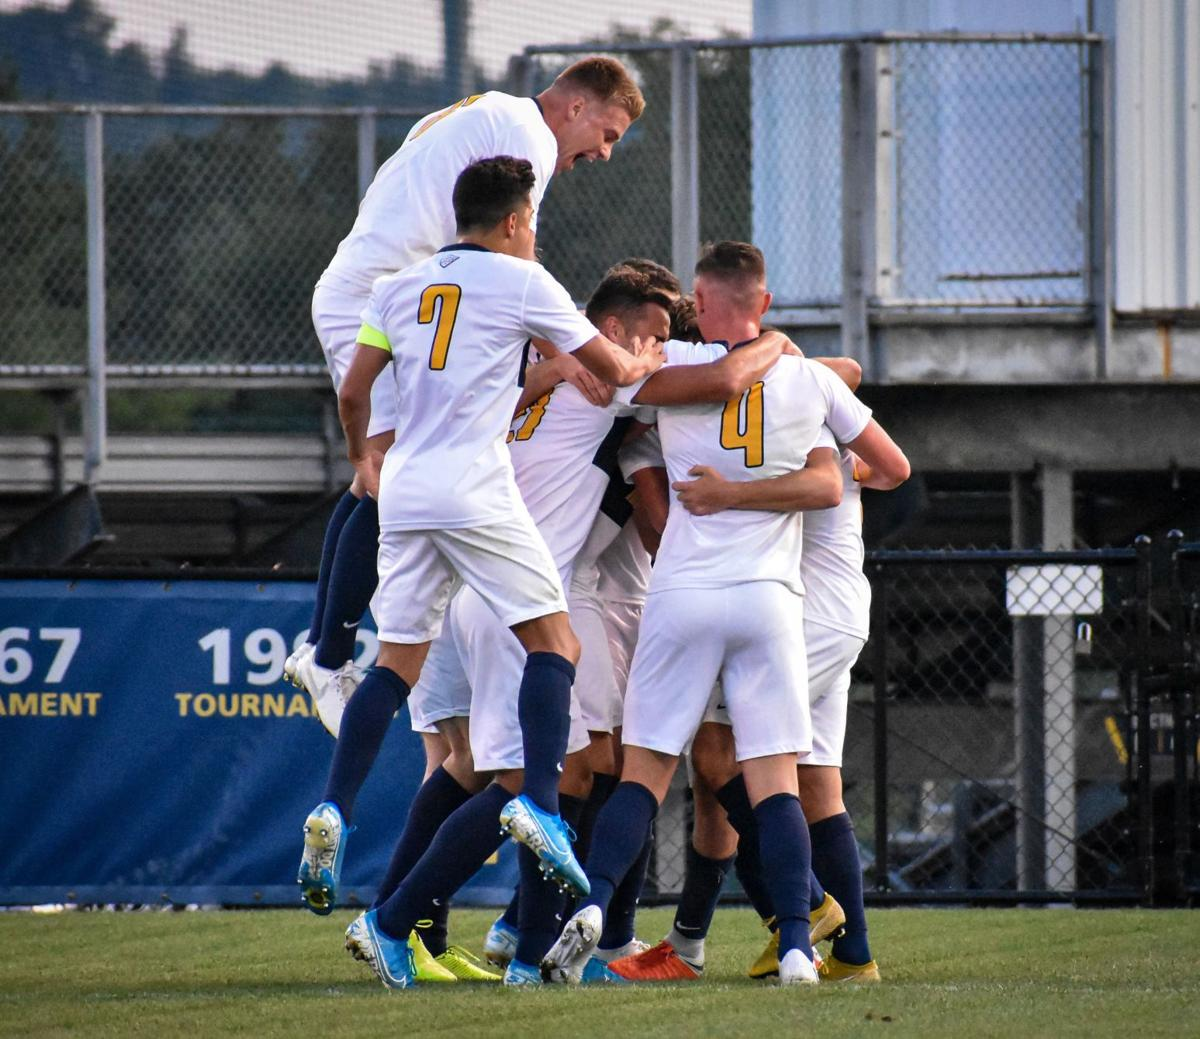 The Mountaineers celebrate after scoring the first goal of the game against Wright State.